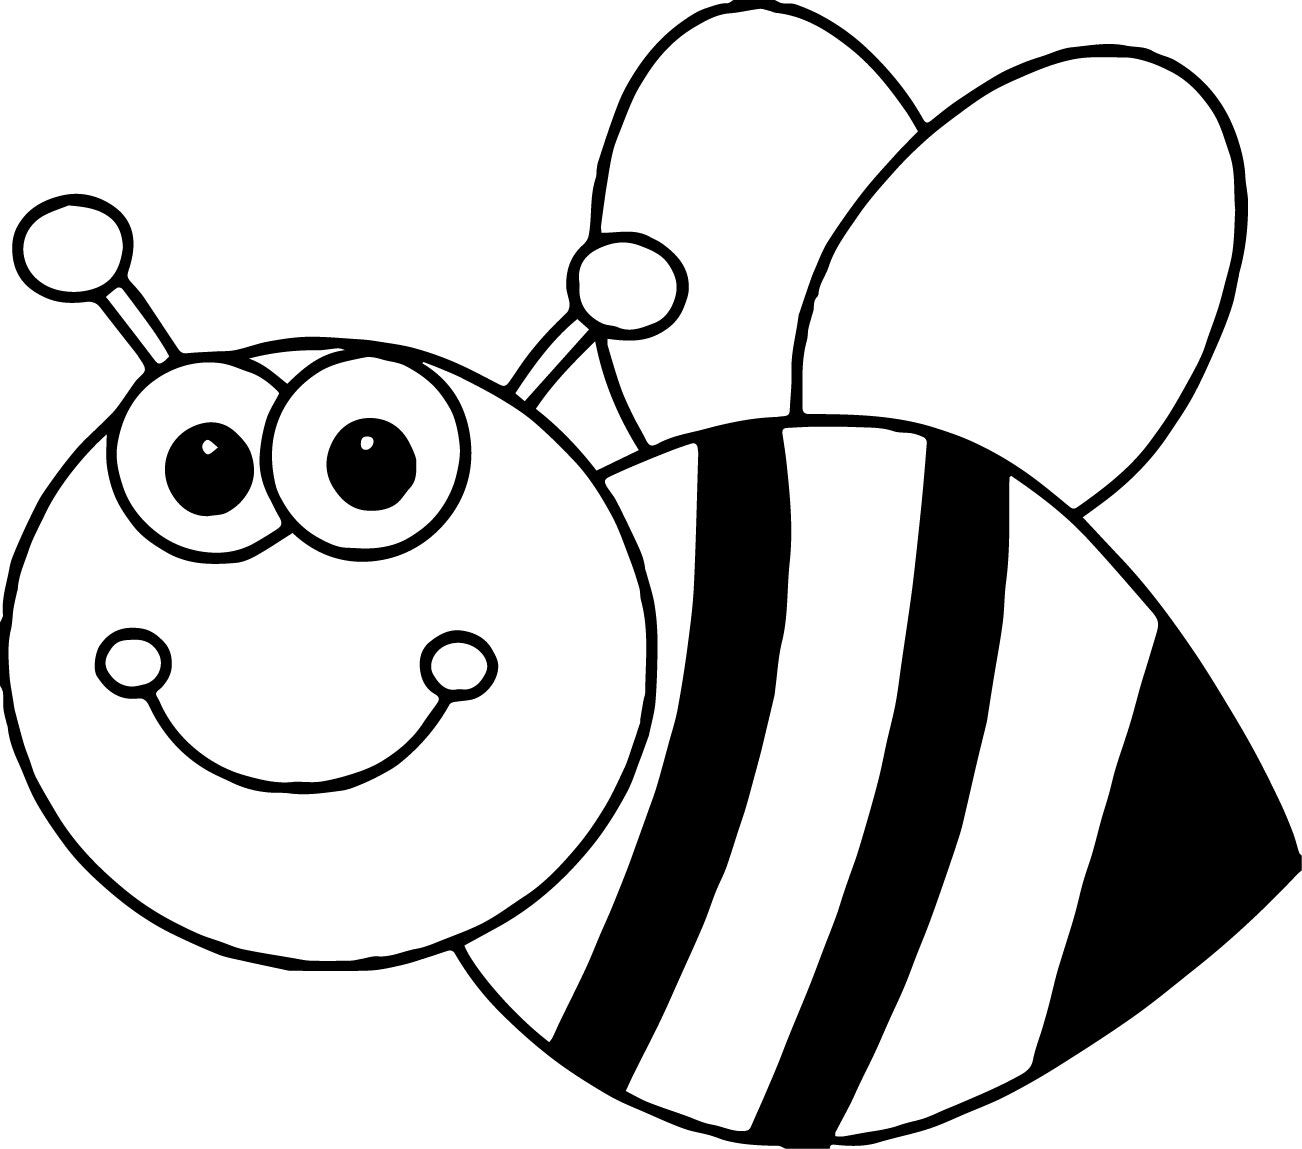 This Is Bumble Bee Coloring Pages Bee Coloring Pages